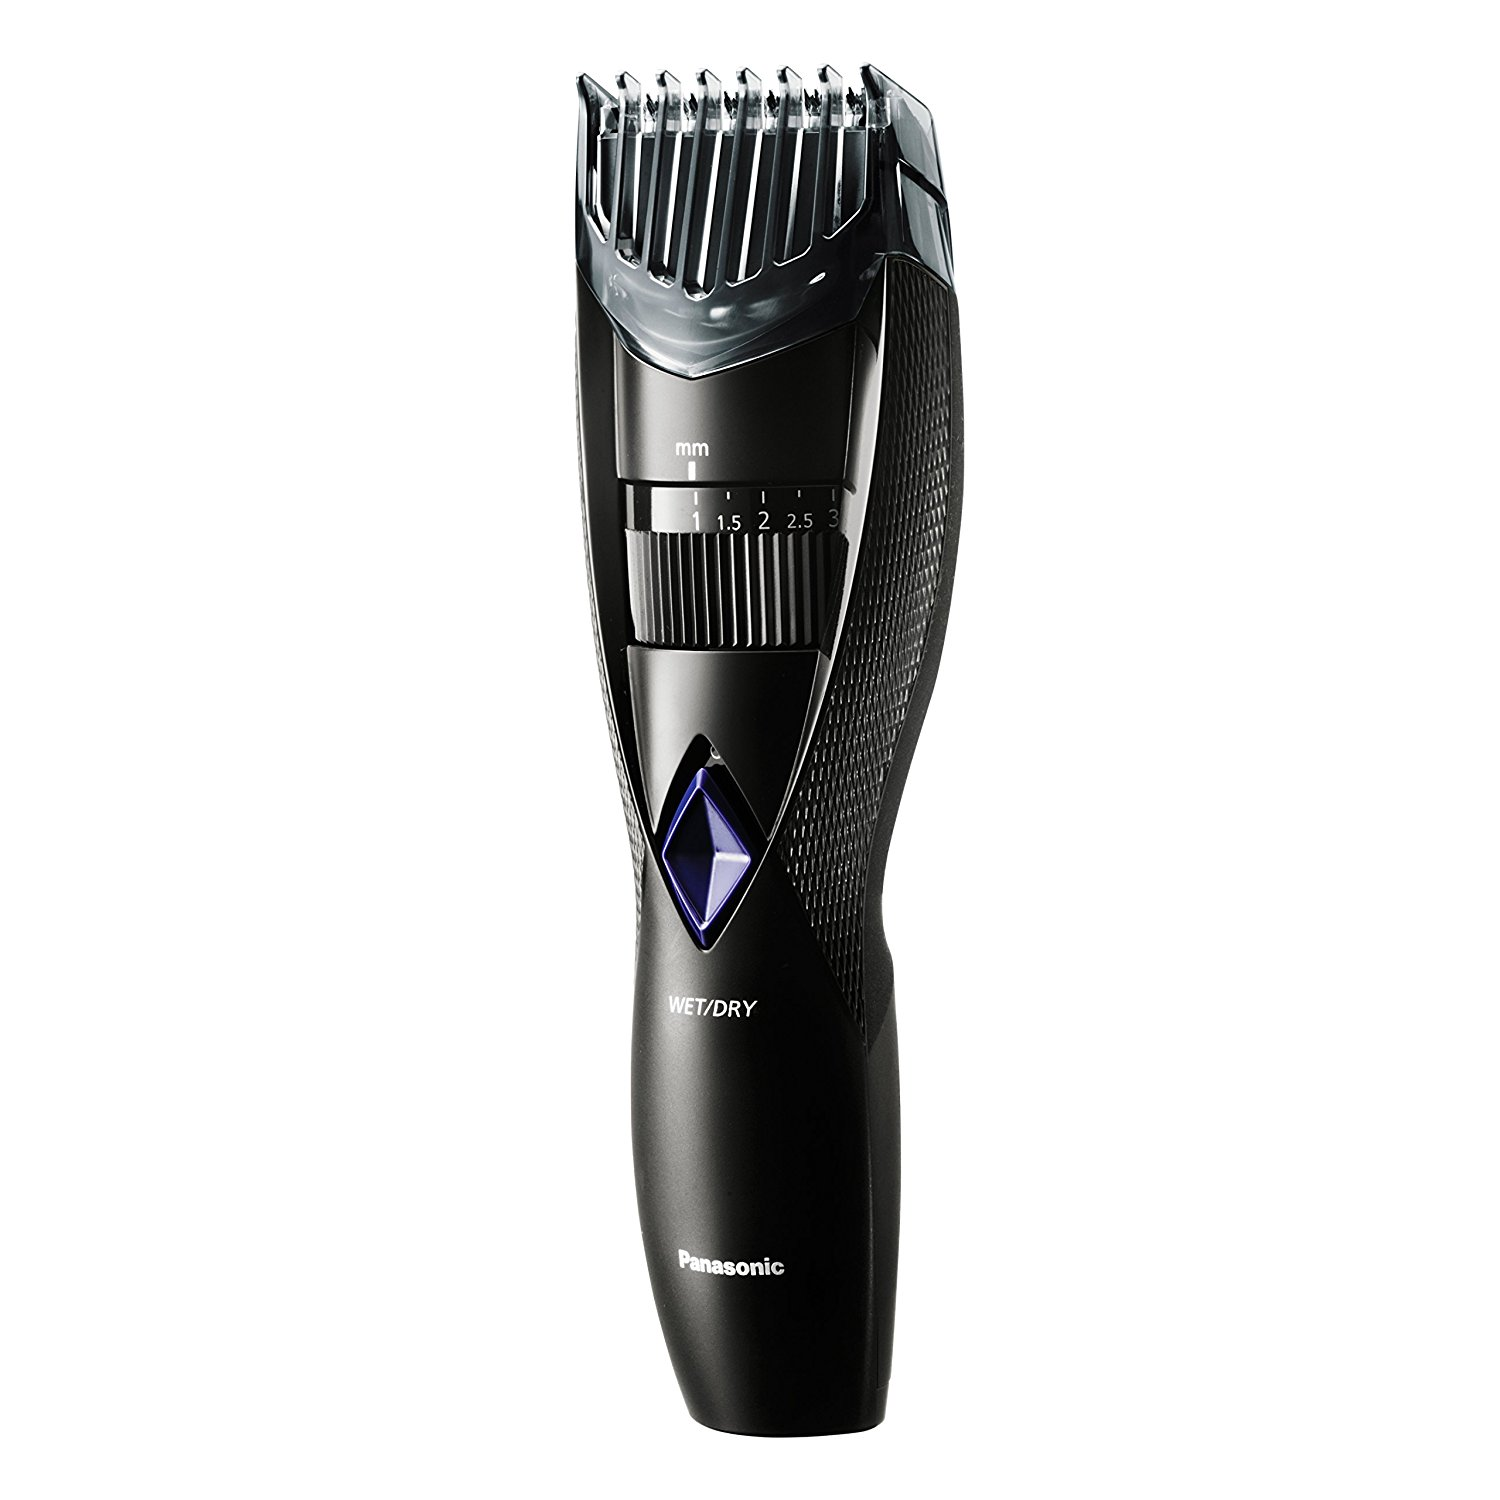 Panasonic hair trimmer photo